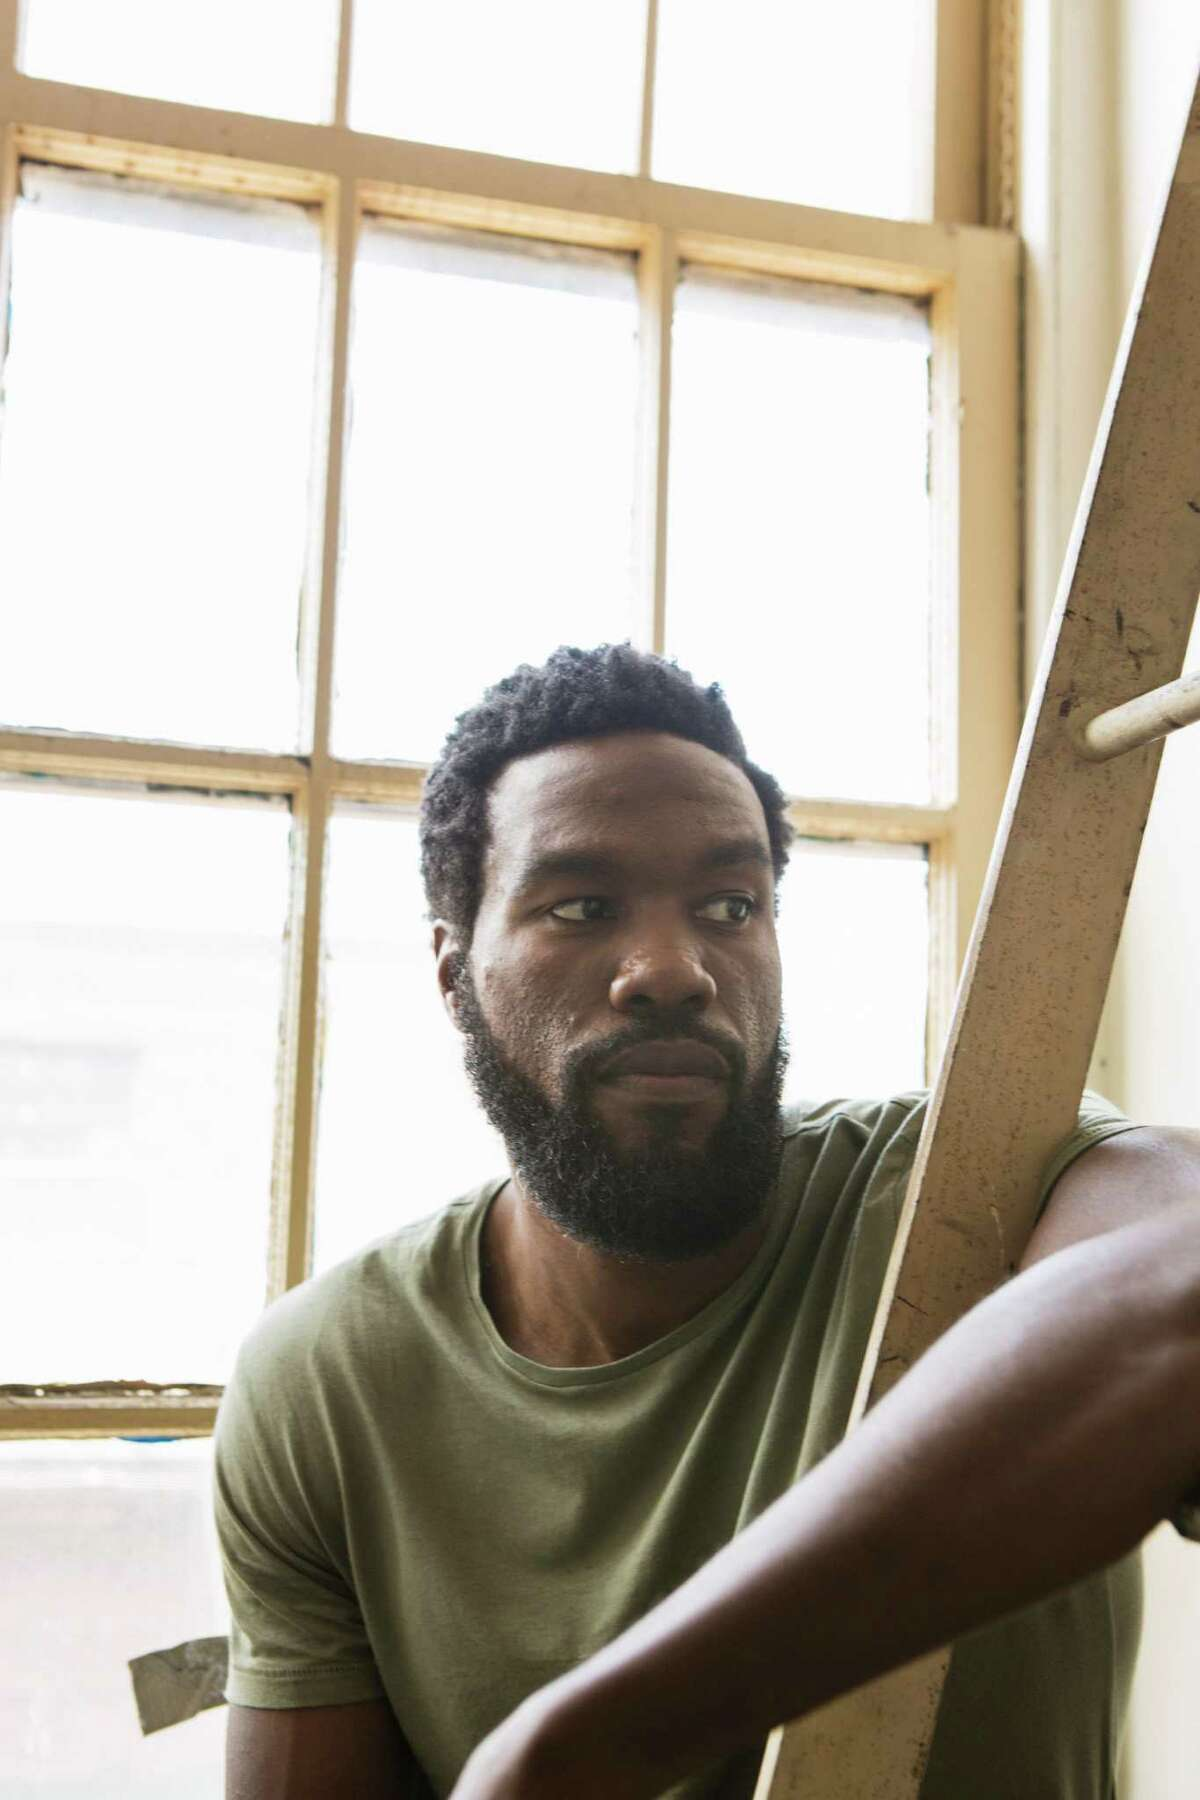 Yahya Abdul-Mateen II on the set of Baz LuhrmannOs new show, OThe Get Down,O in New York, May 18, 2016. Abdul-Mateen went from an unemployed University of California, Berkeley graduate with an architecture degree to a key actor in the latest big-budget Netflix production. (Jessica Lehrman/The New York Times) ORG XMIT: XNYT77